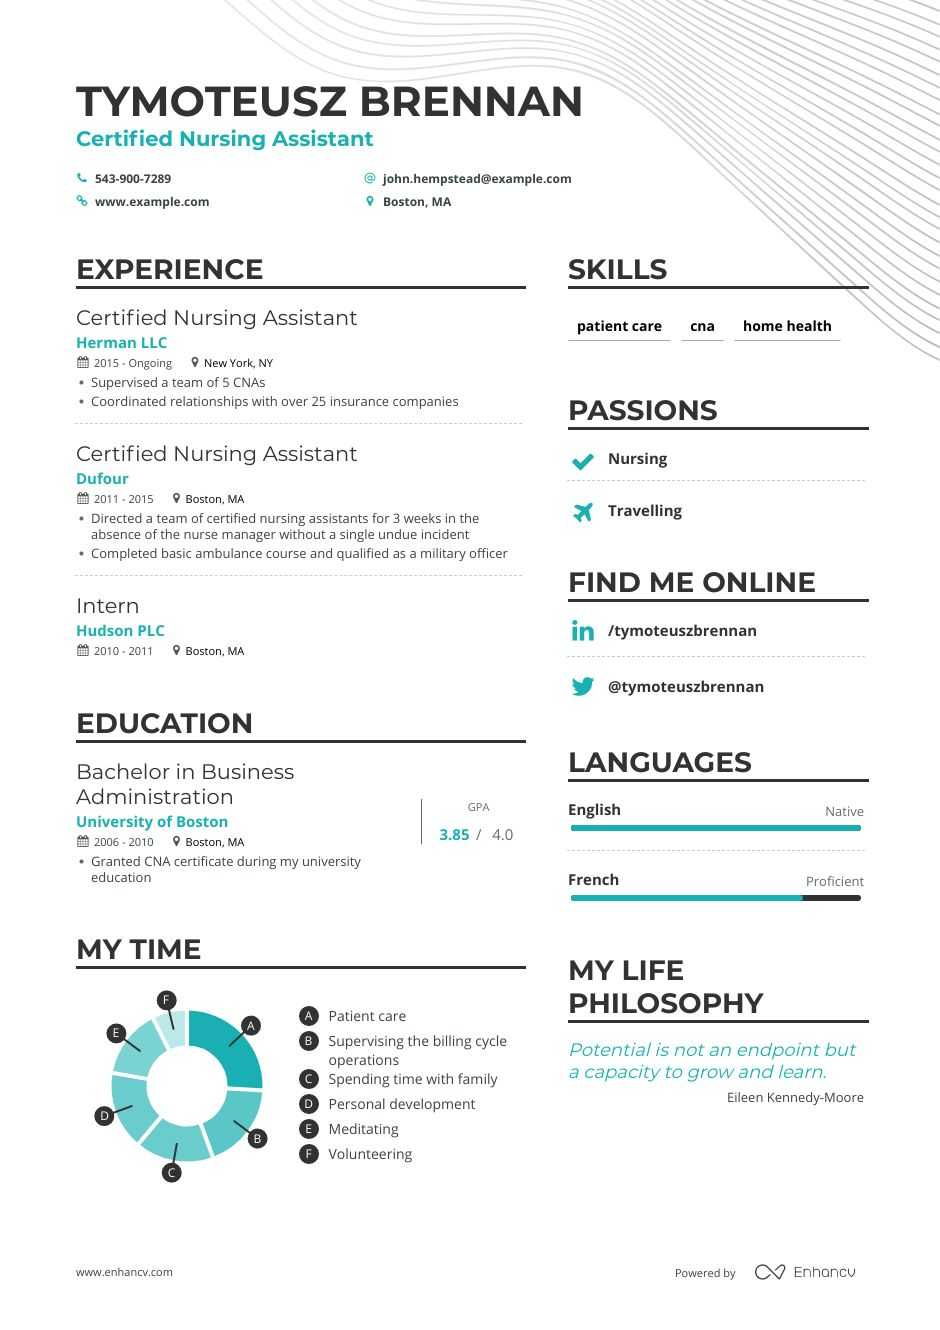 certified nursing assistant resume samples and writing guide for enhancv examples Resume Nursing Assistant Resume Examples